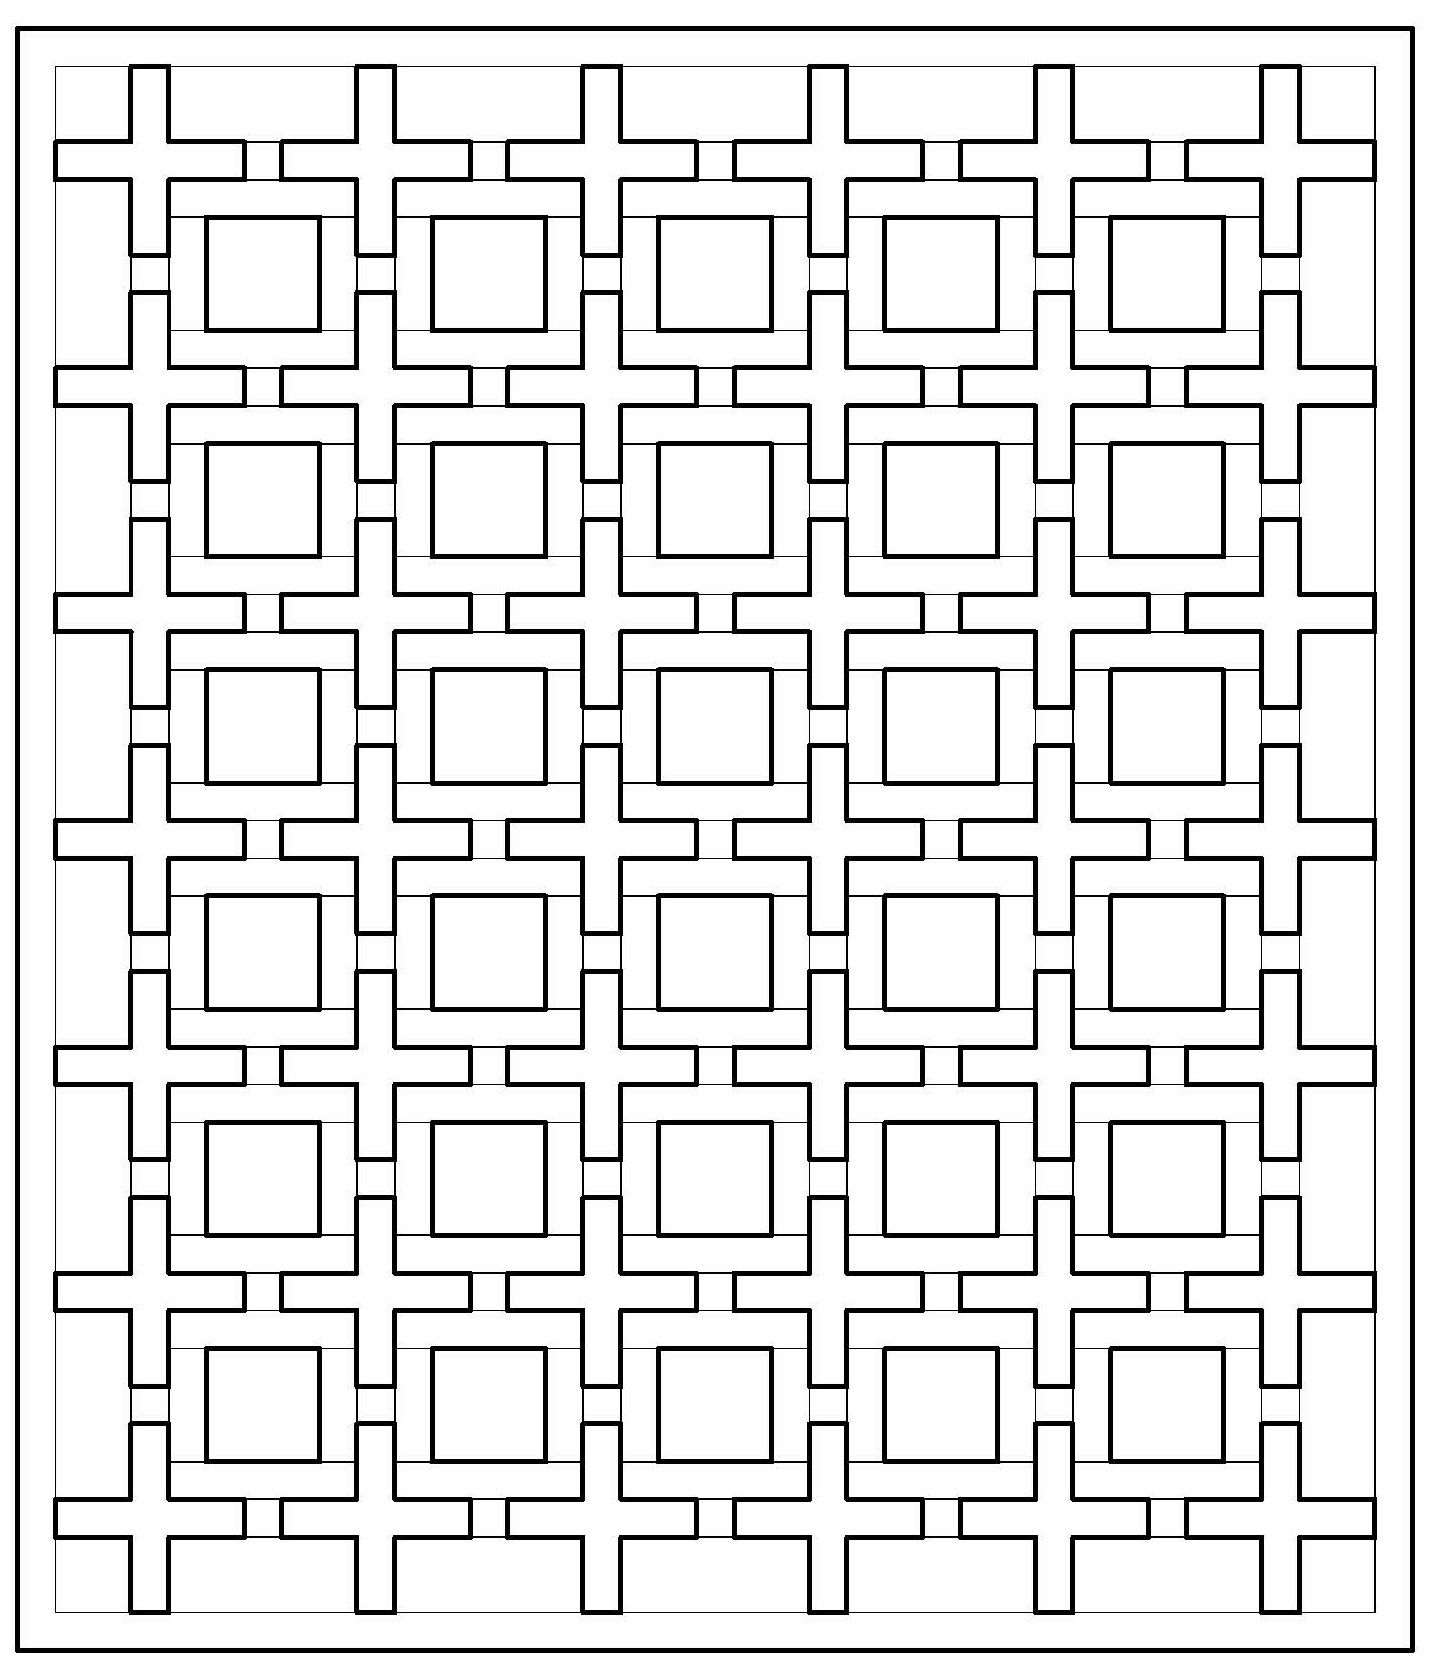 design patterns coloring pages make your own coloring page by - Quilt Block Coloring Pages